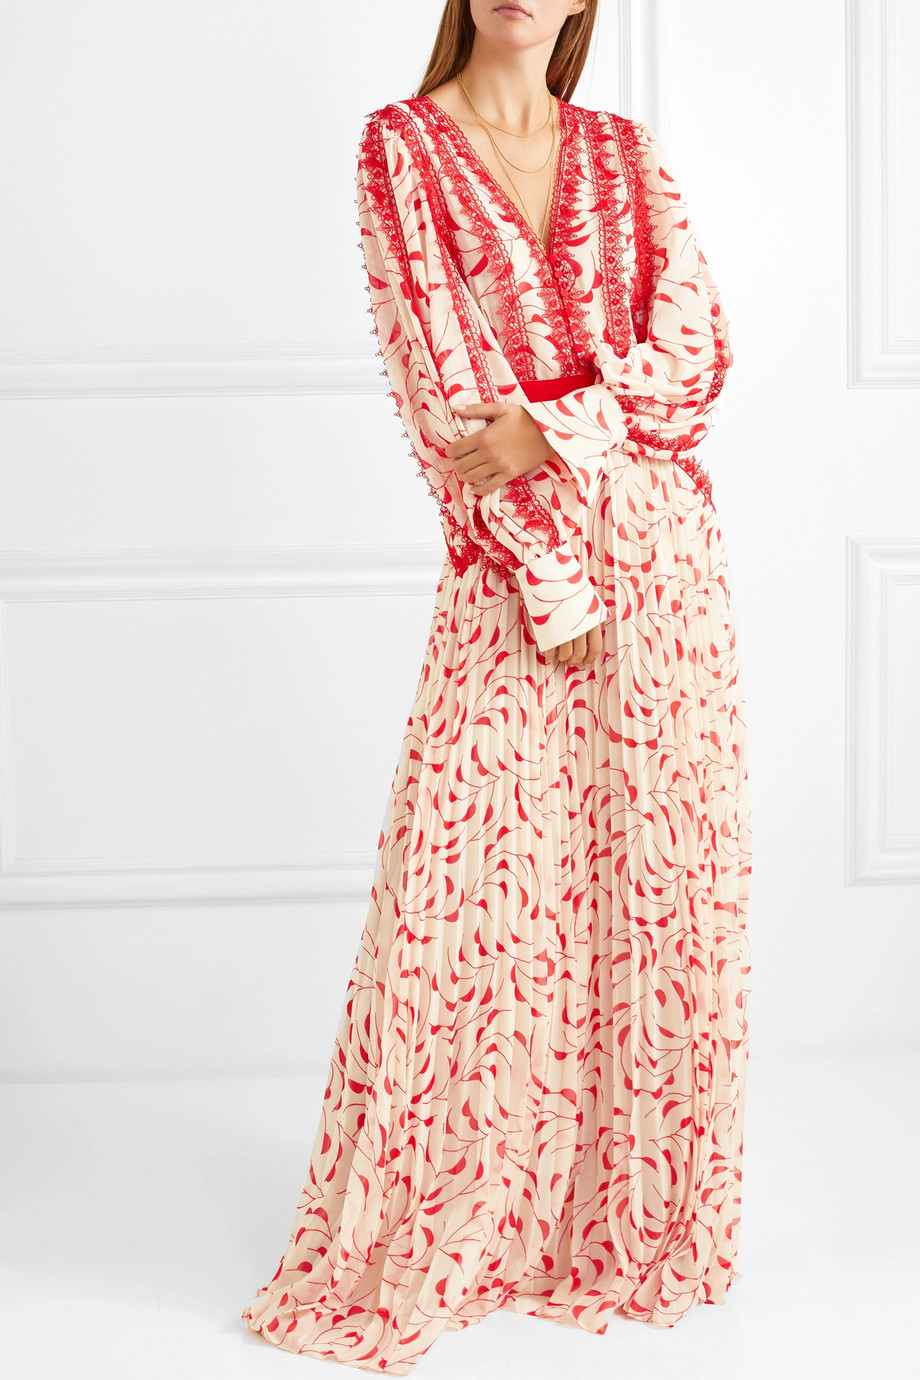 2019 New arrive Women lace trimmed pleated printed chiffon maxi dress